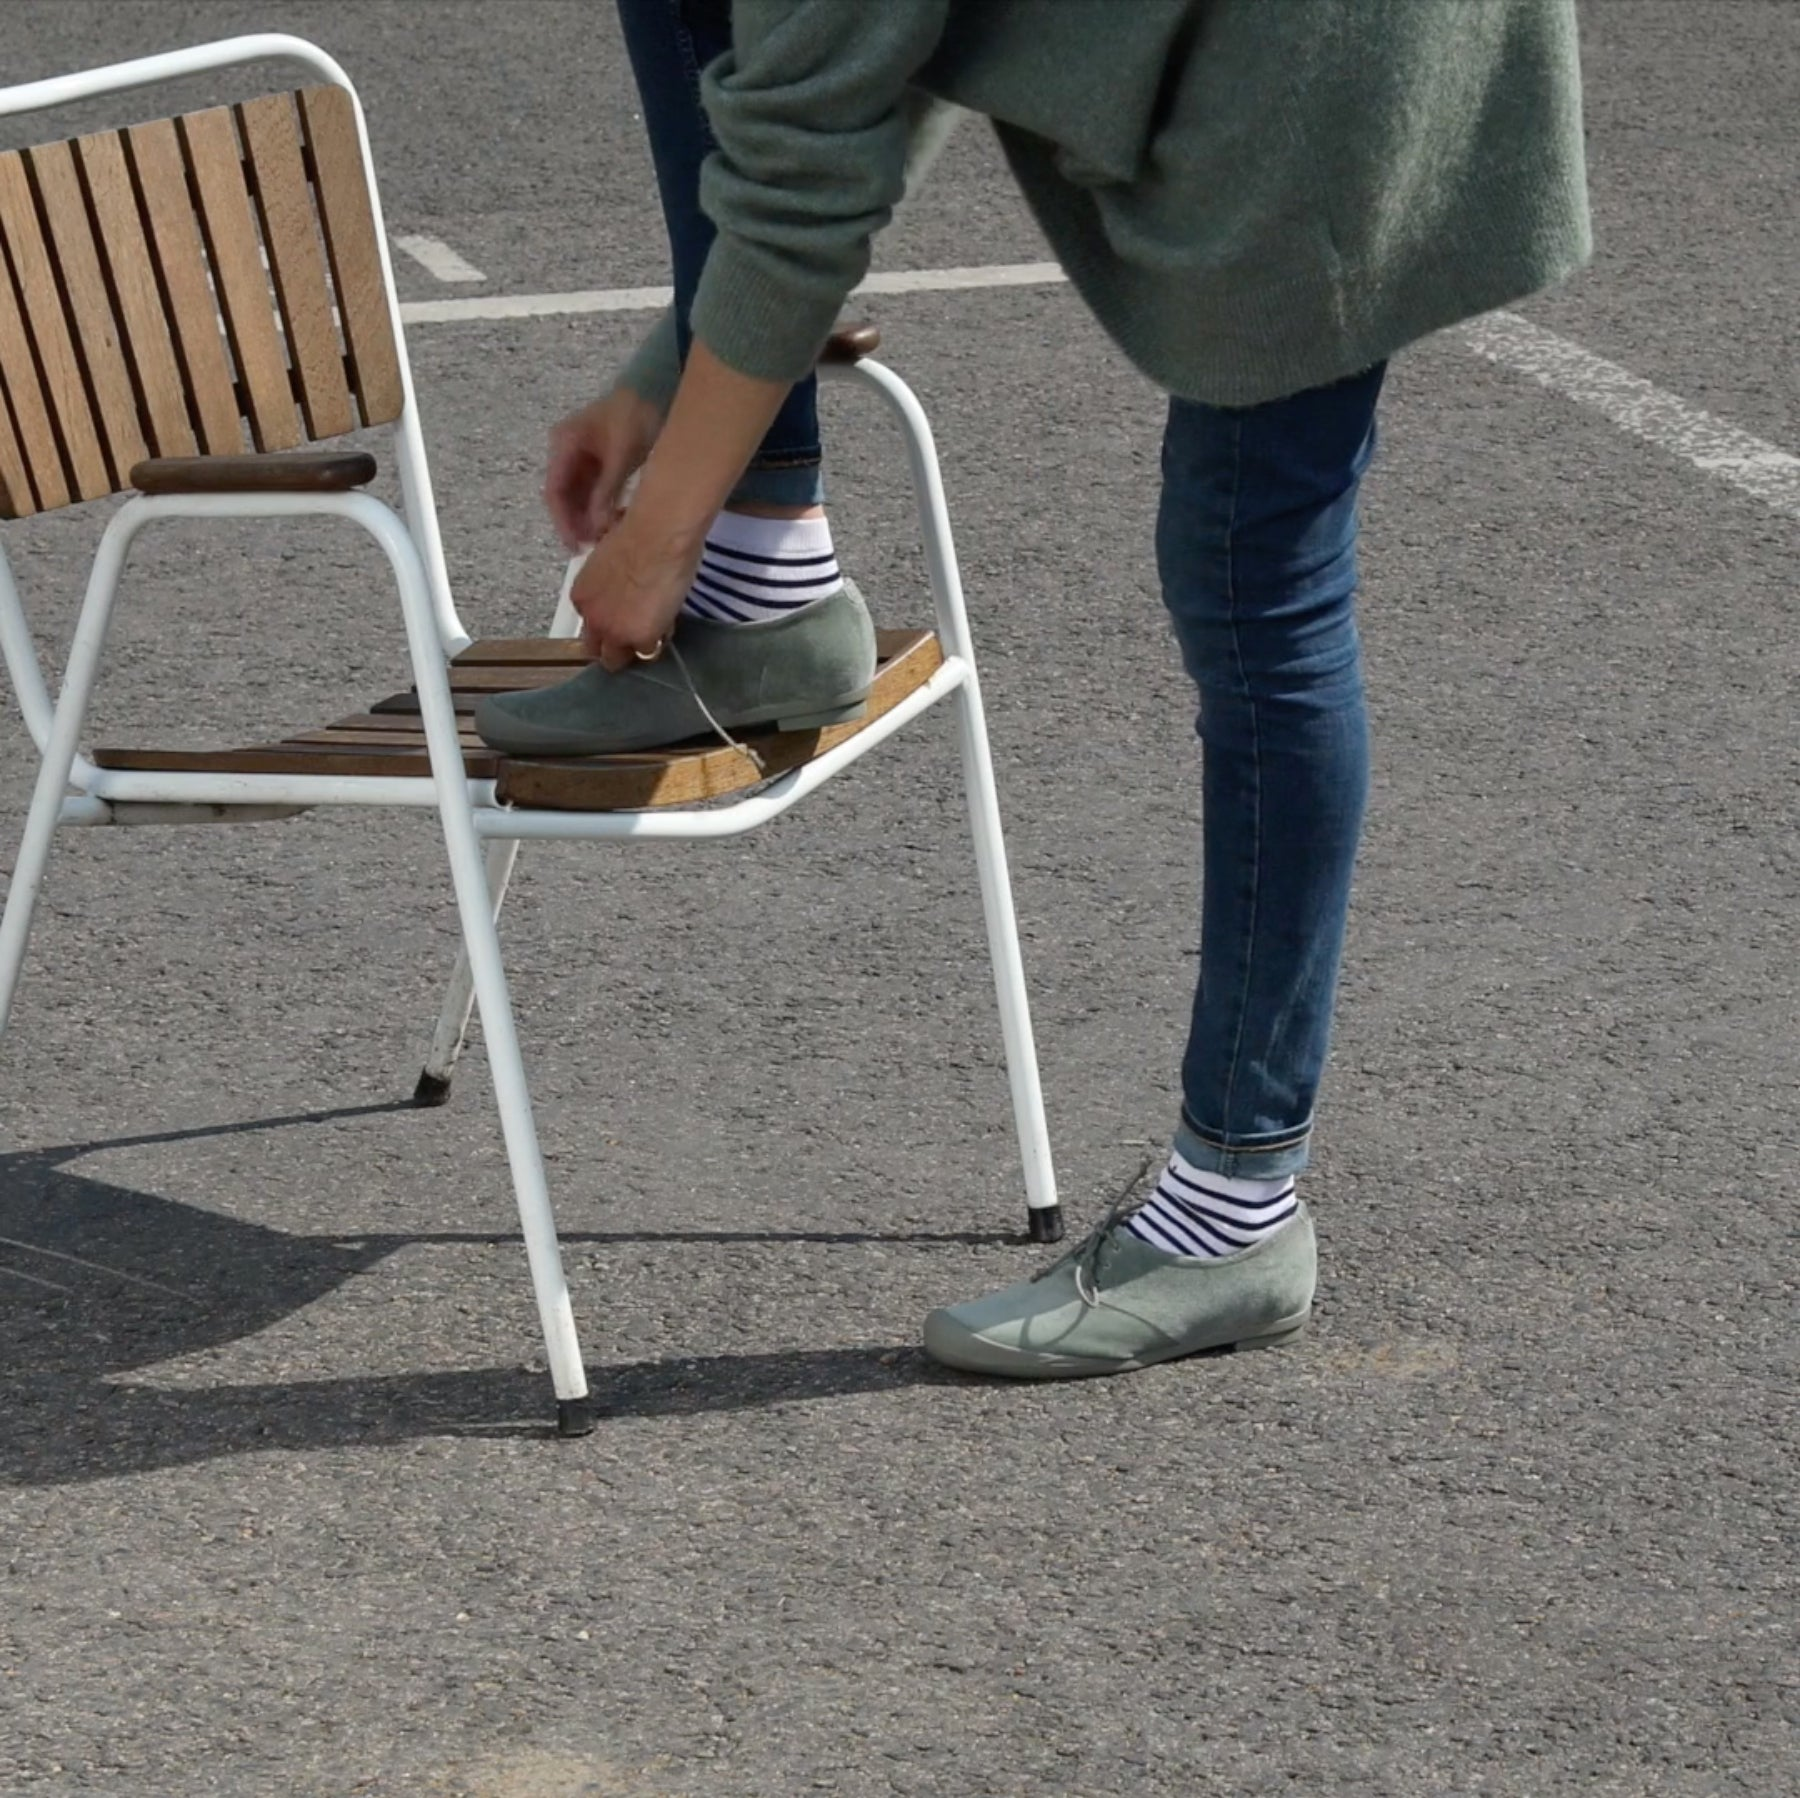 Model wears grey velvet brogues with stripy sailor socks, on a grey asphalt ground.